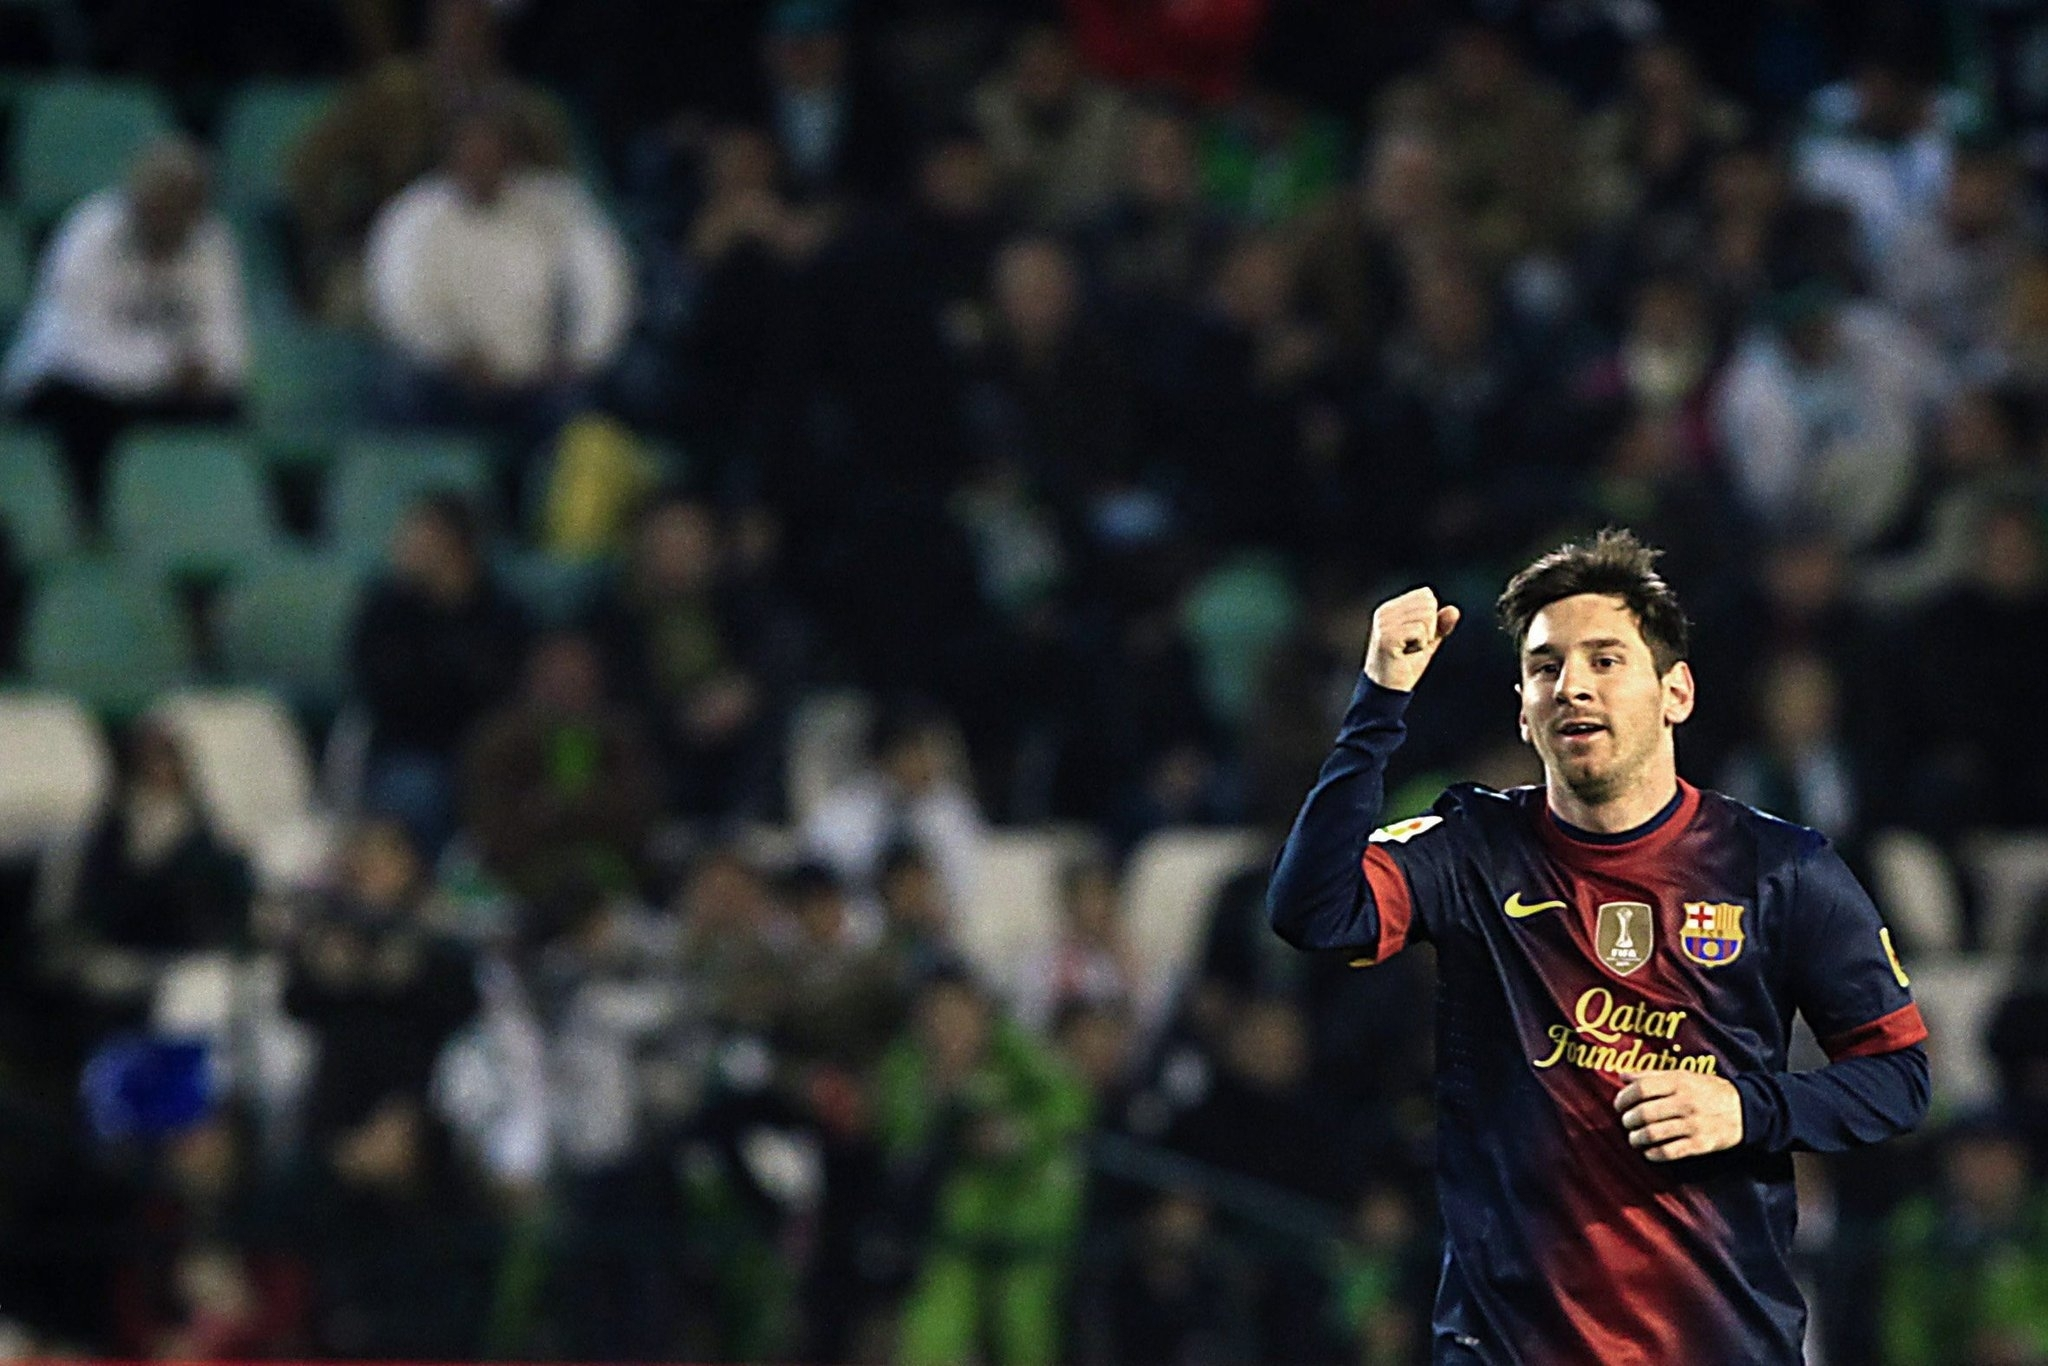 There's More To Messi Than A Record For Goals - The New York